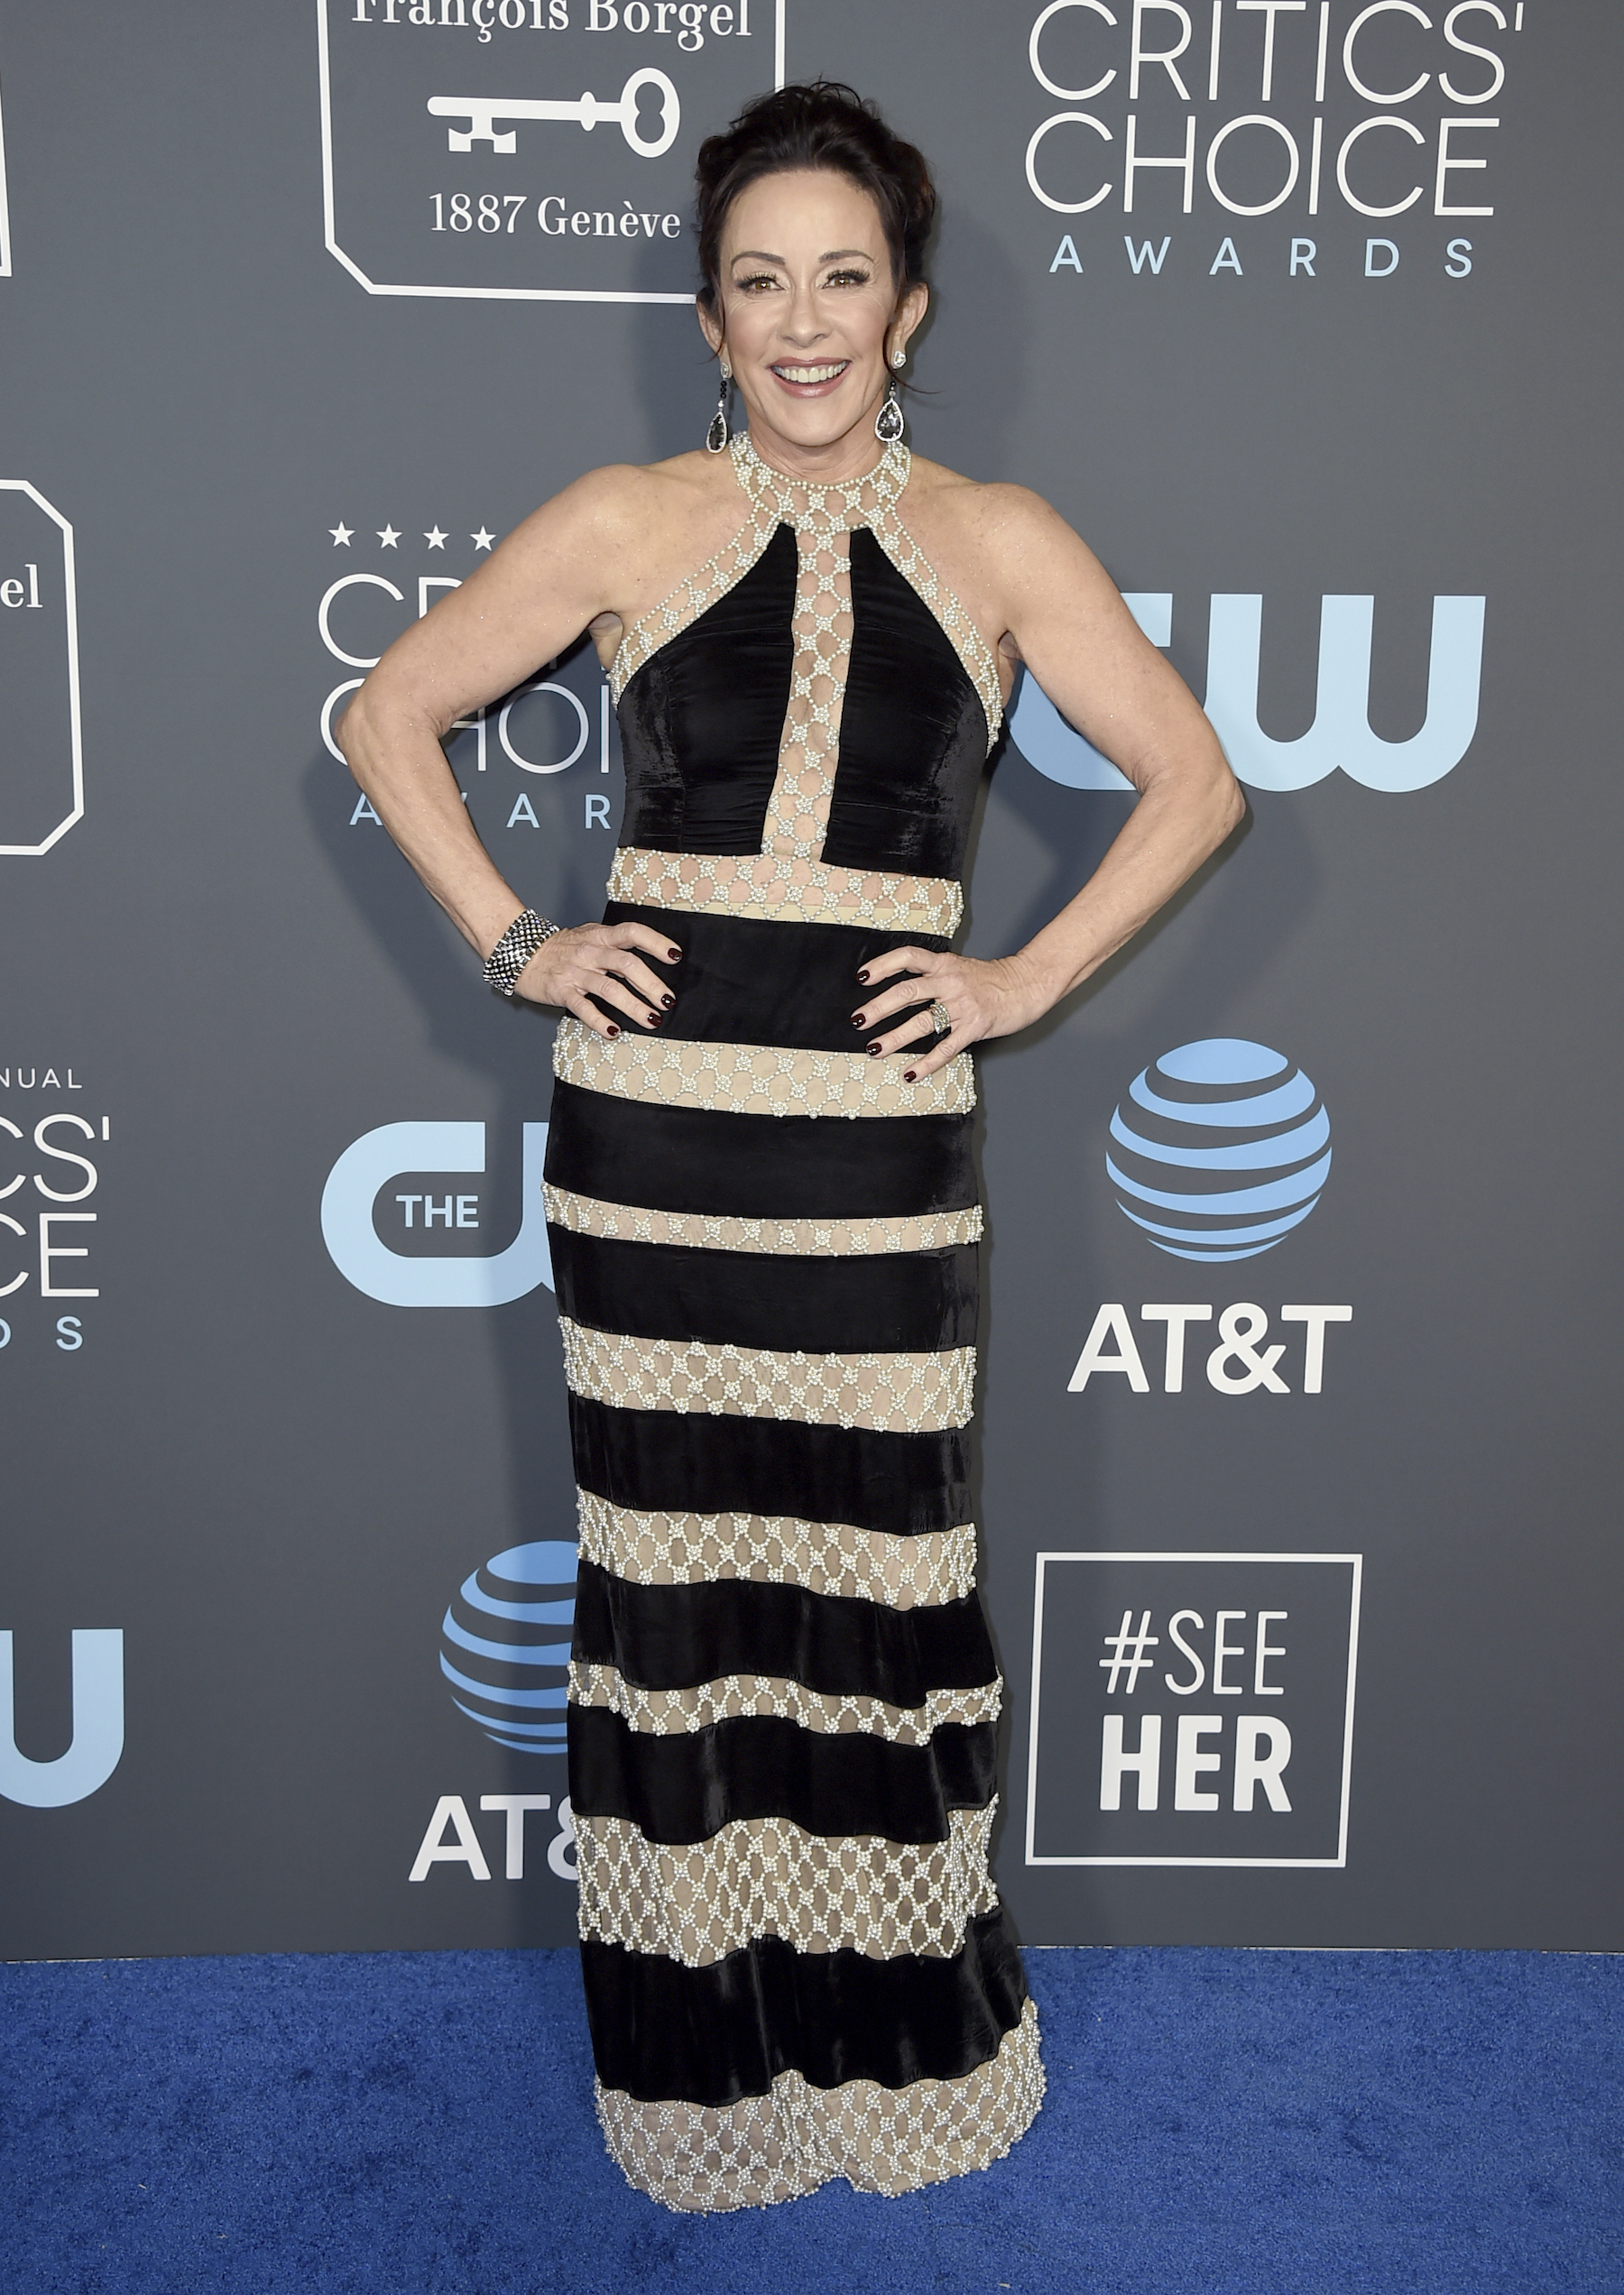 <div class='meta'><div class='origin-logo' data-origin='AP'></div><span class='caption-text' data-credit='Jordan Strauss/Invision/AP'>Patricia Heaton arrives at the 24th annual Critics' Choice Awards on Sunday, Jan. 13, 2019, at the Barker Hangar in Santa Monica, Calif.</span></div>